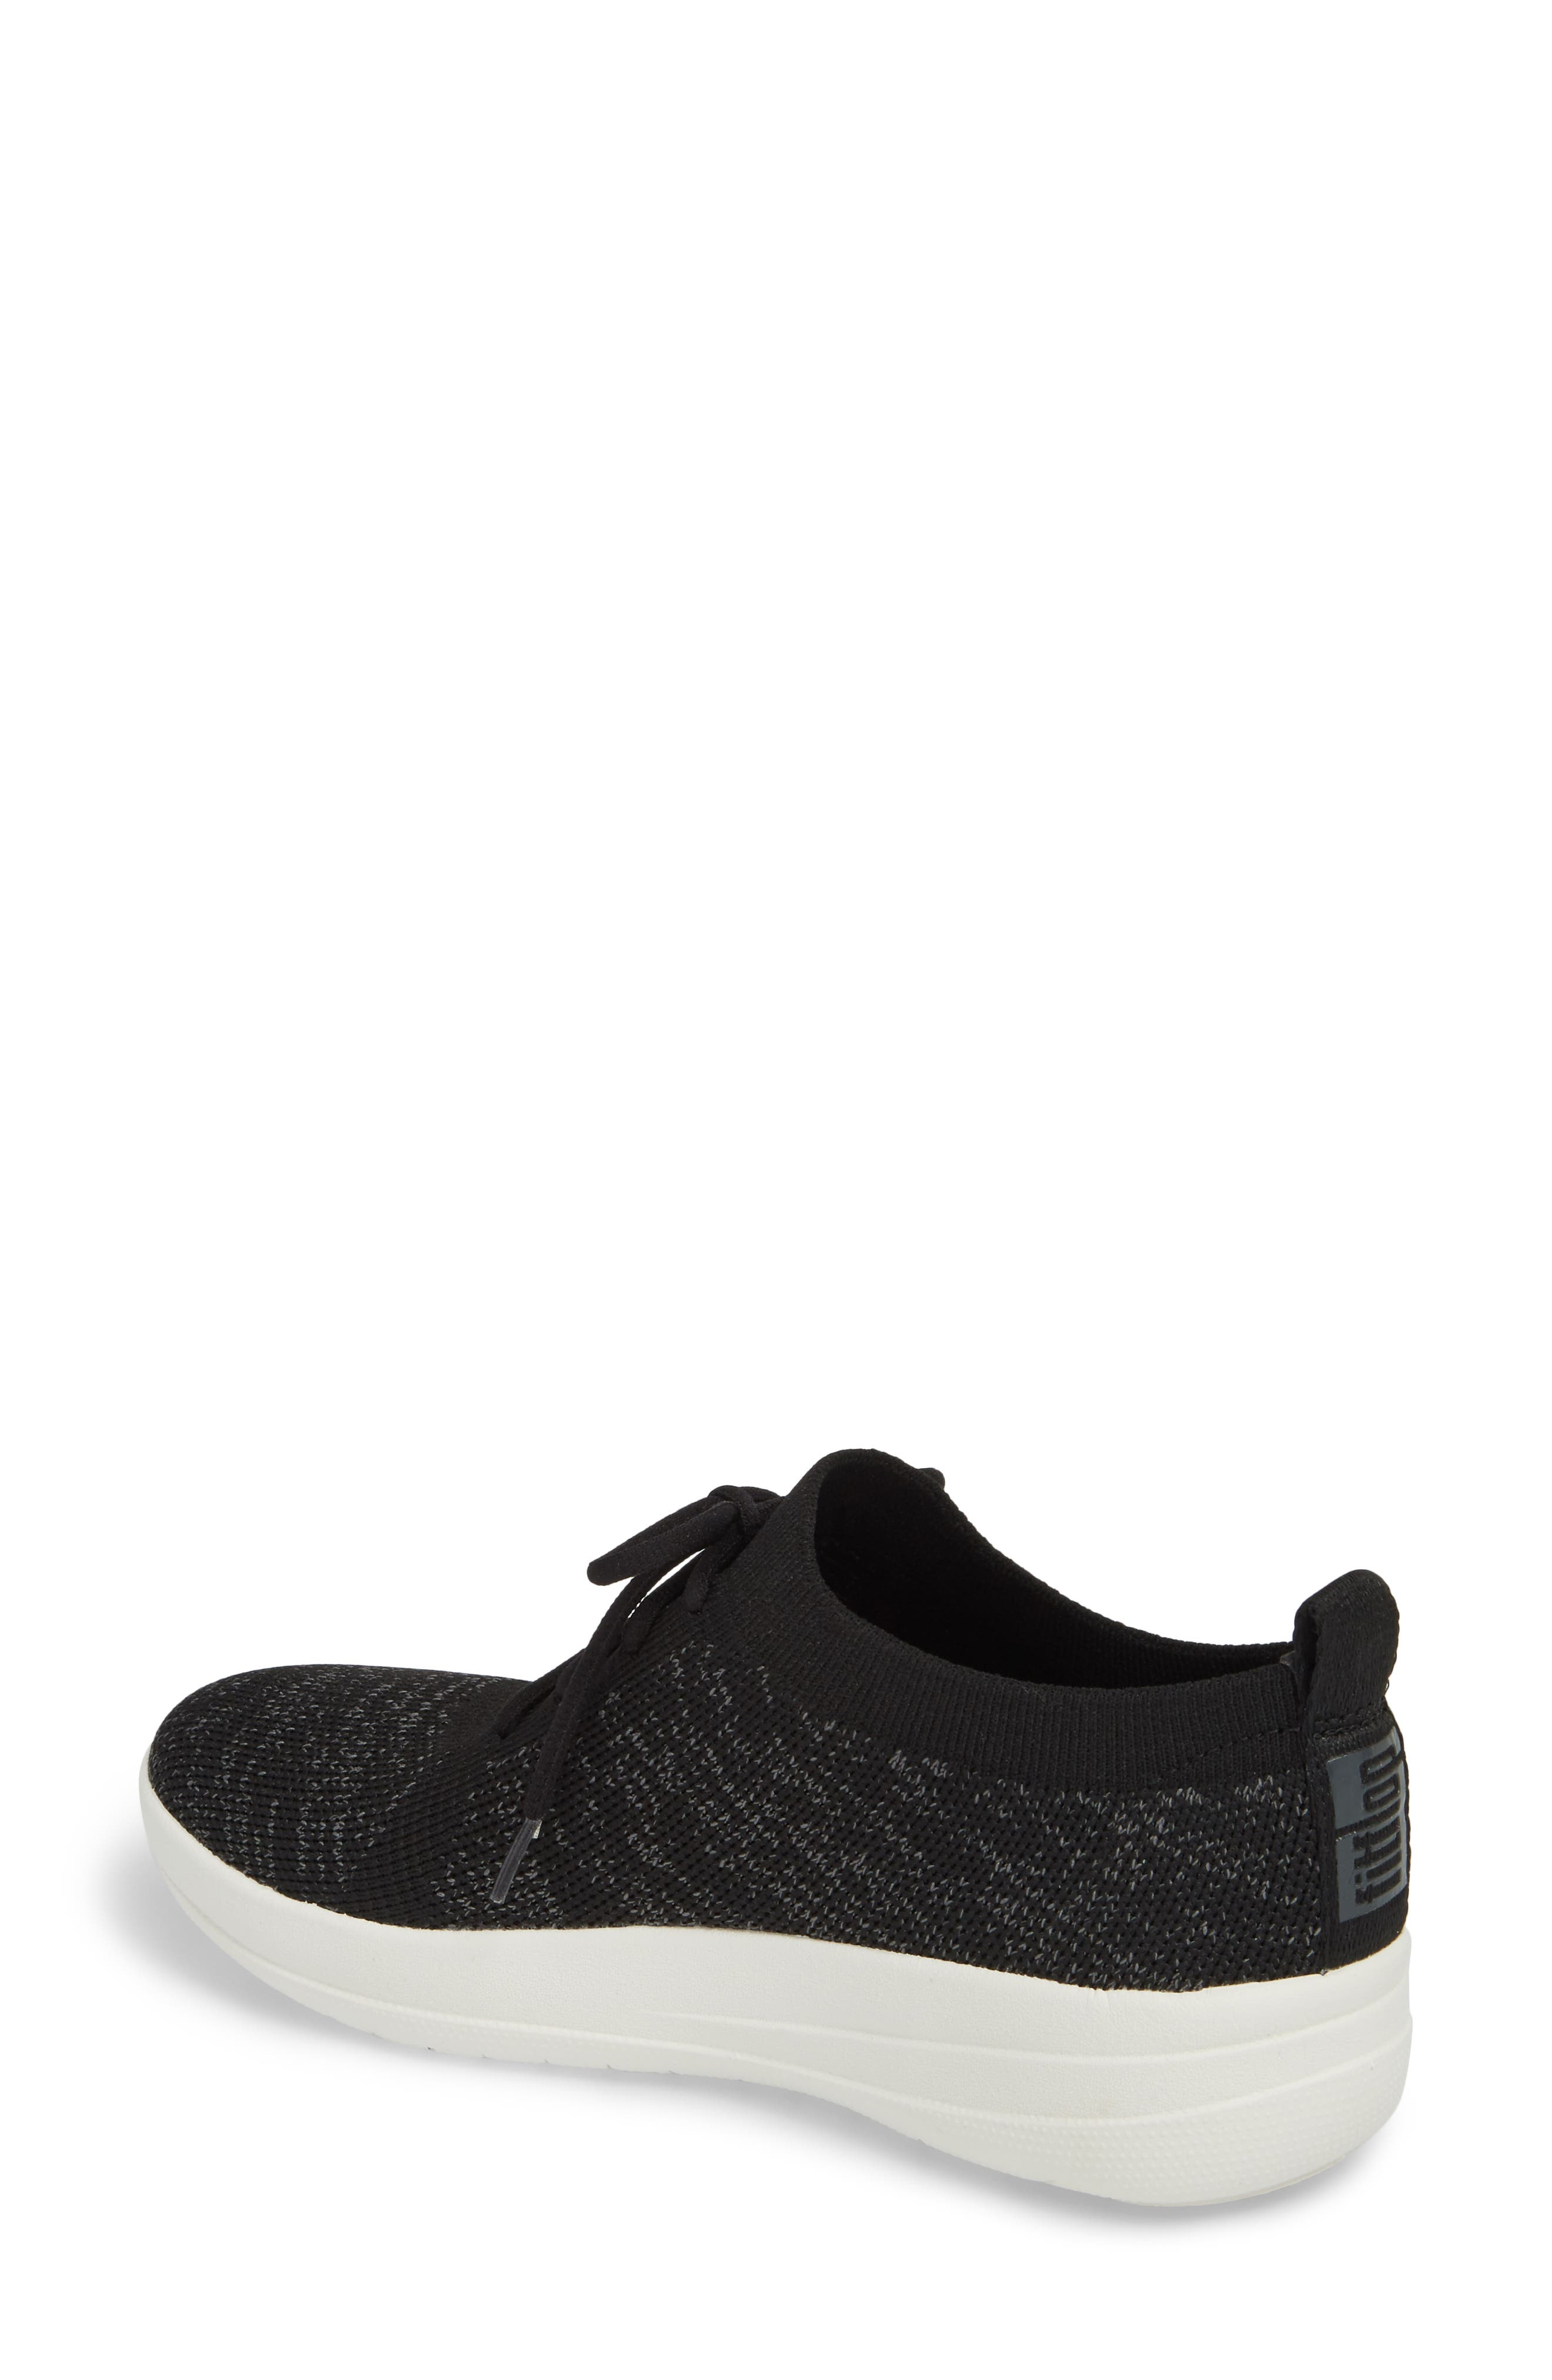 FITFLOP, F-Sporty Uberknit<sup>™</sup> Sneaker, Alternate thumbnail 2, color, BLACK